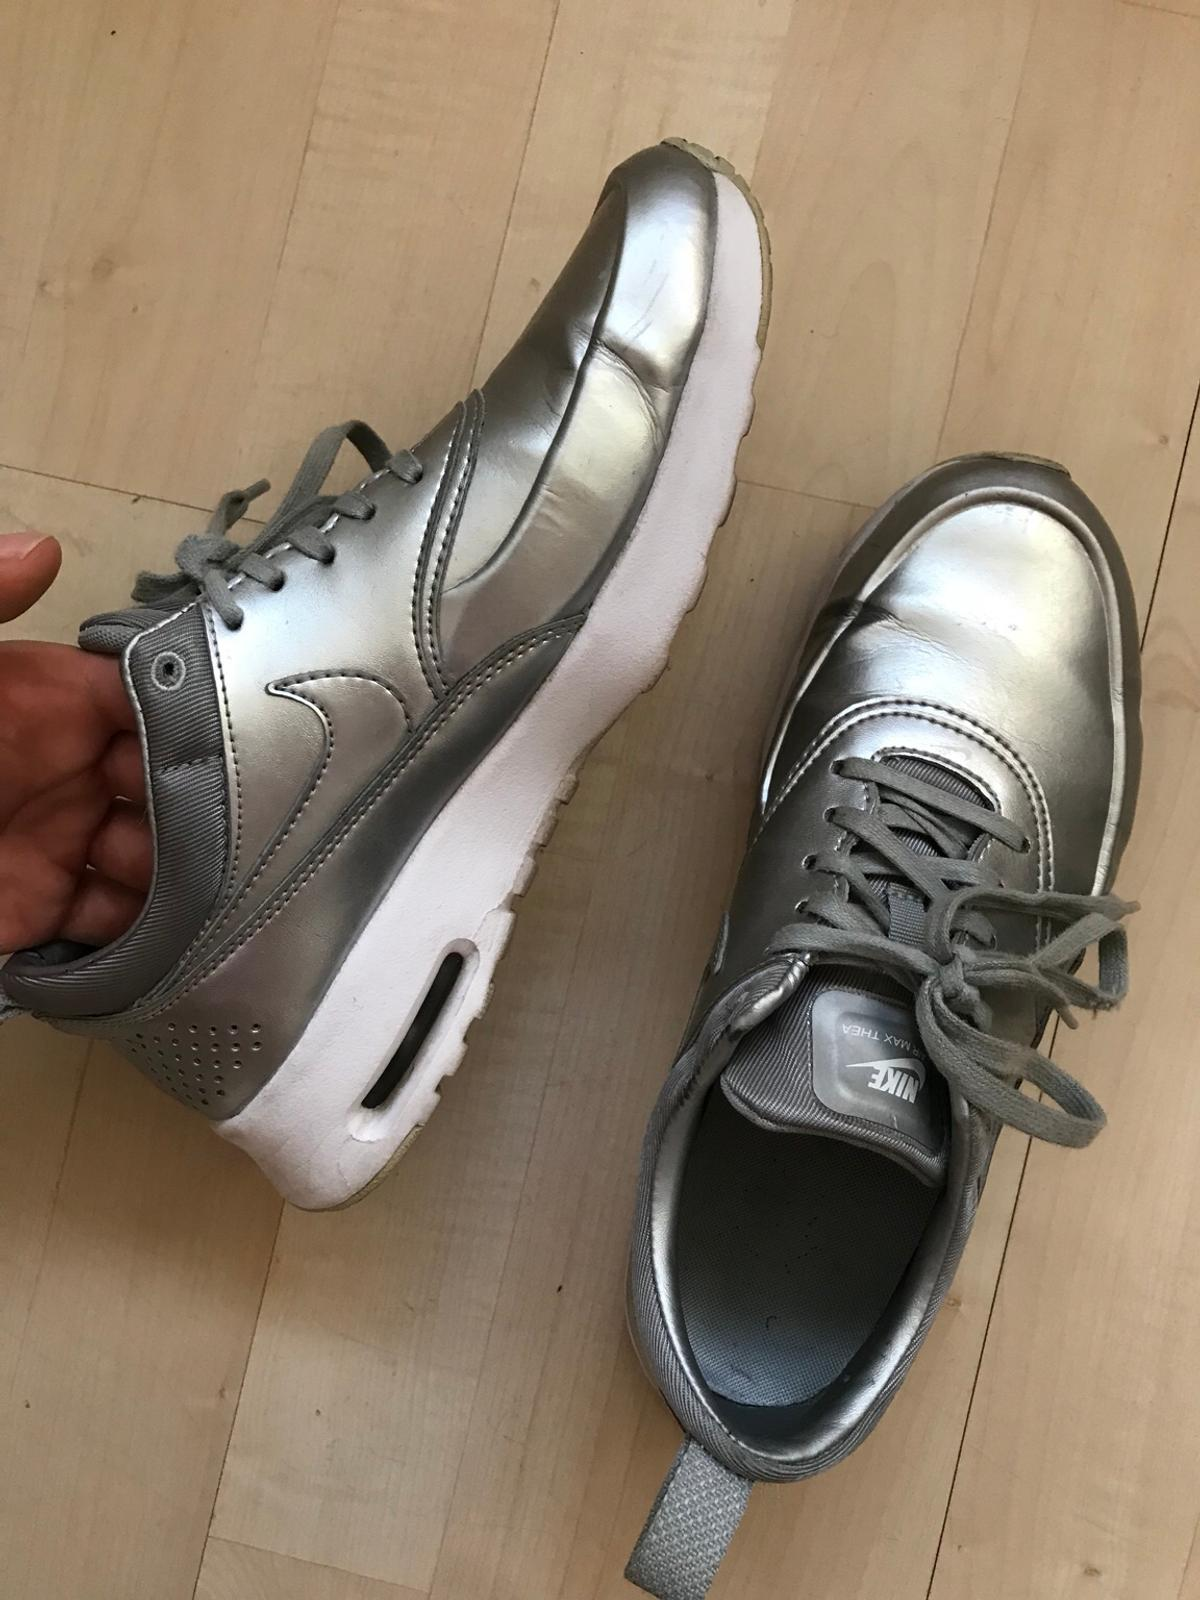 Nike Air Max Thea Größe 37,5 in 42697 Ohligs for €50.00 for